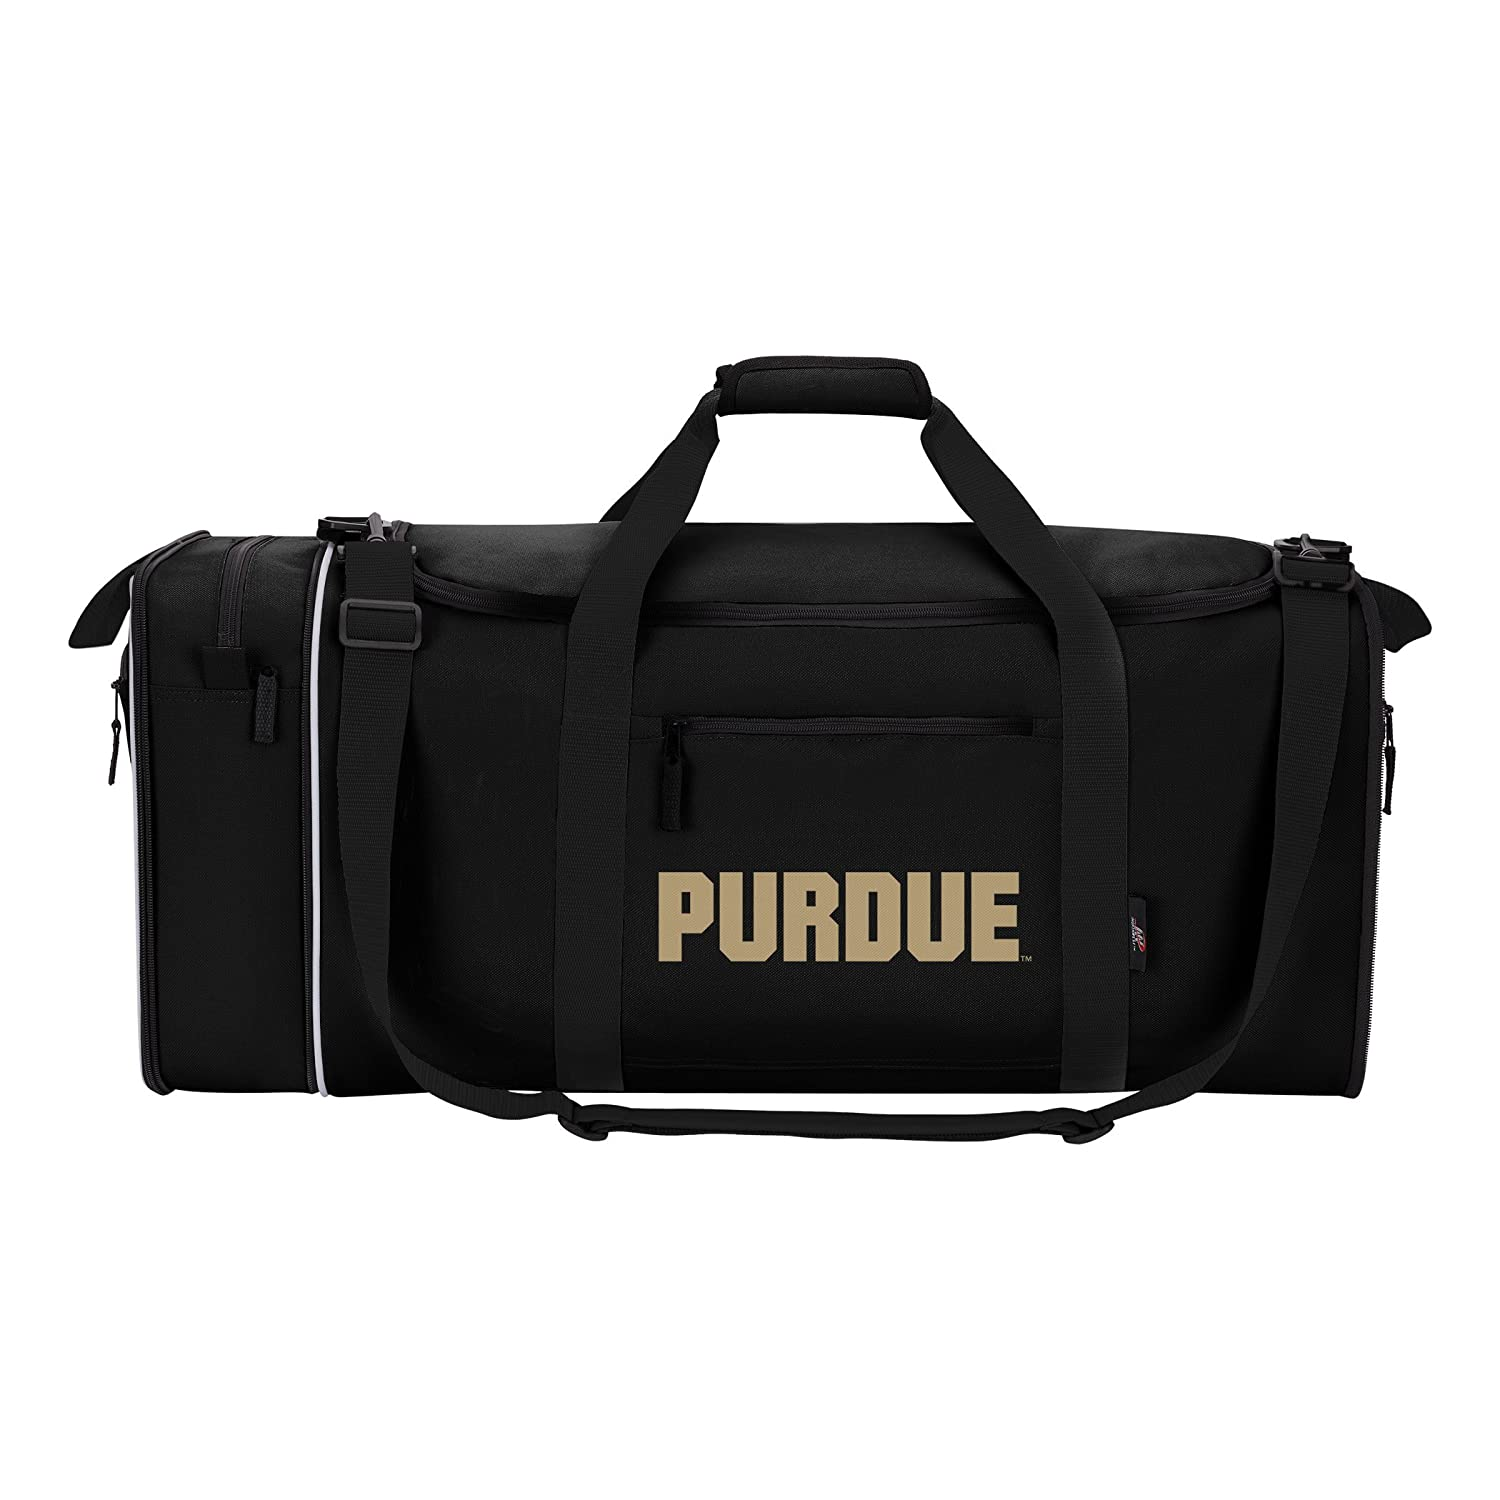 The Northwest Company Officially Licensed NCAA Steal Duffel Bag Blue ... 9ef07bfbf298b